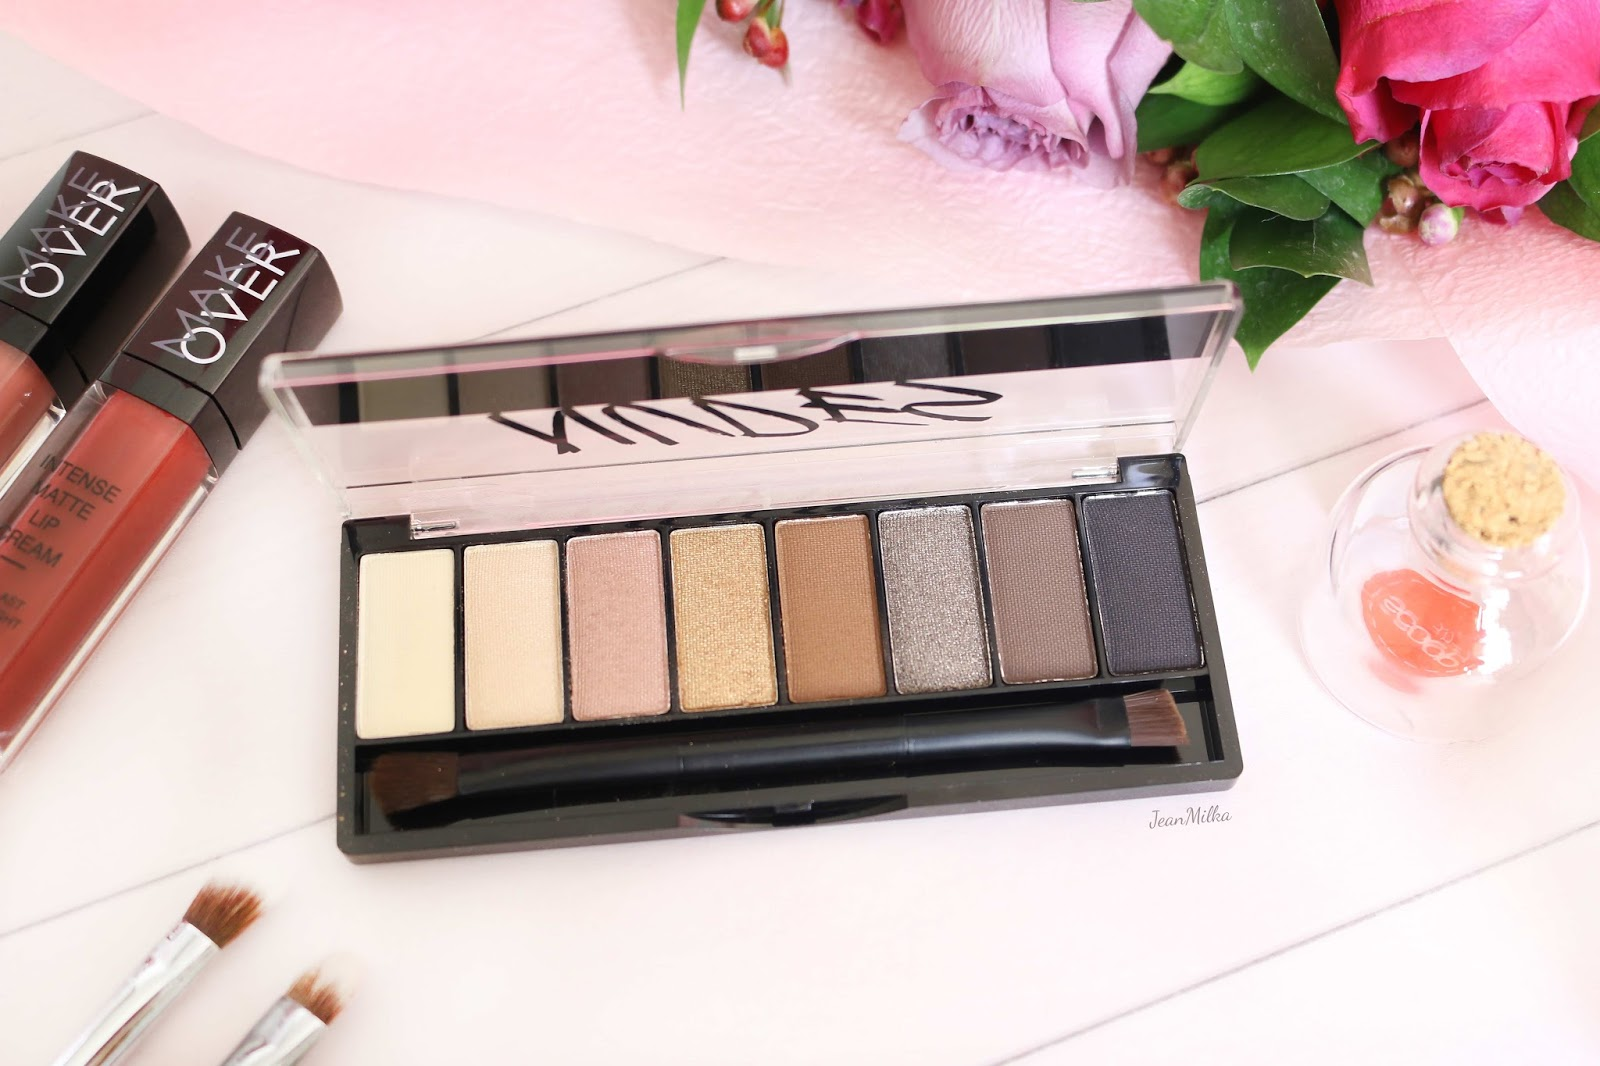 make over, make over indonesia, make over eyeshadow, make over eyeshadow palette, eyeshadow, eyeshadow palette, makeup, makeup indonesia, drugstore, make over eyecentric, make over nudes palette, make over smokey palette